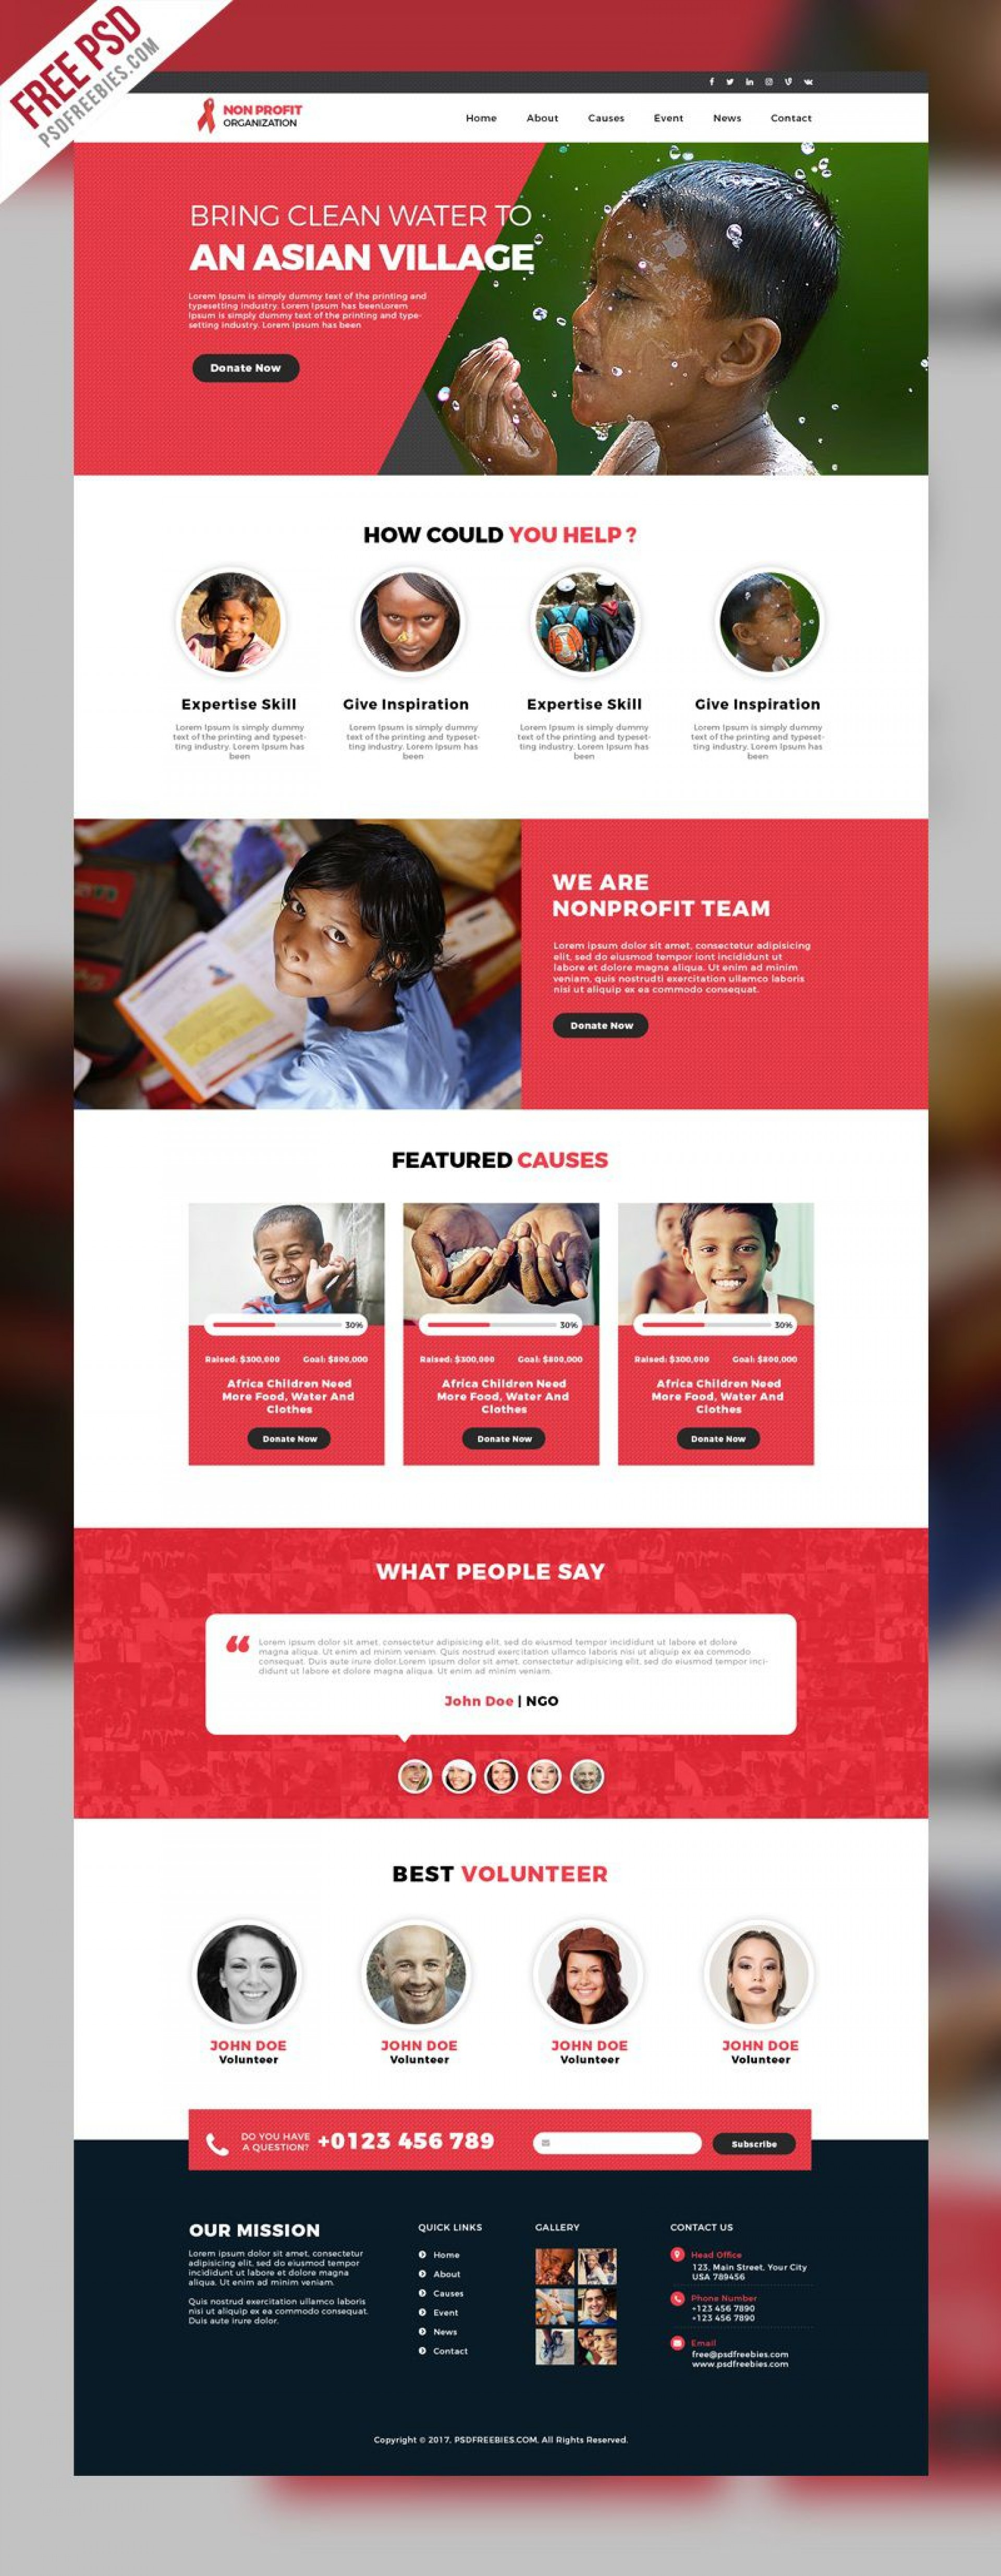 007 Top Free Non Profit Website Template Inspiration  Templates Organization Charity1920